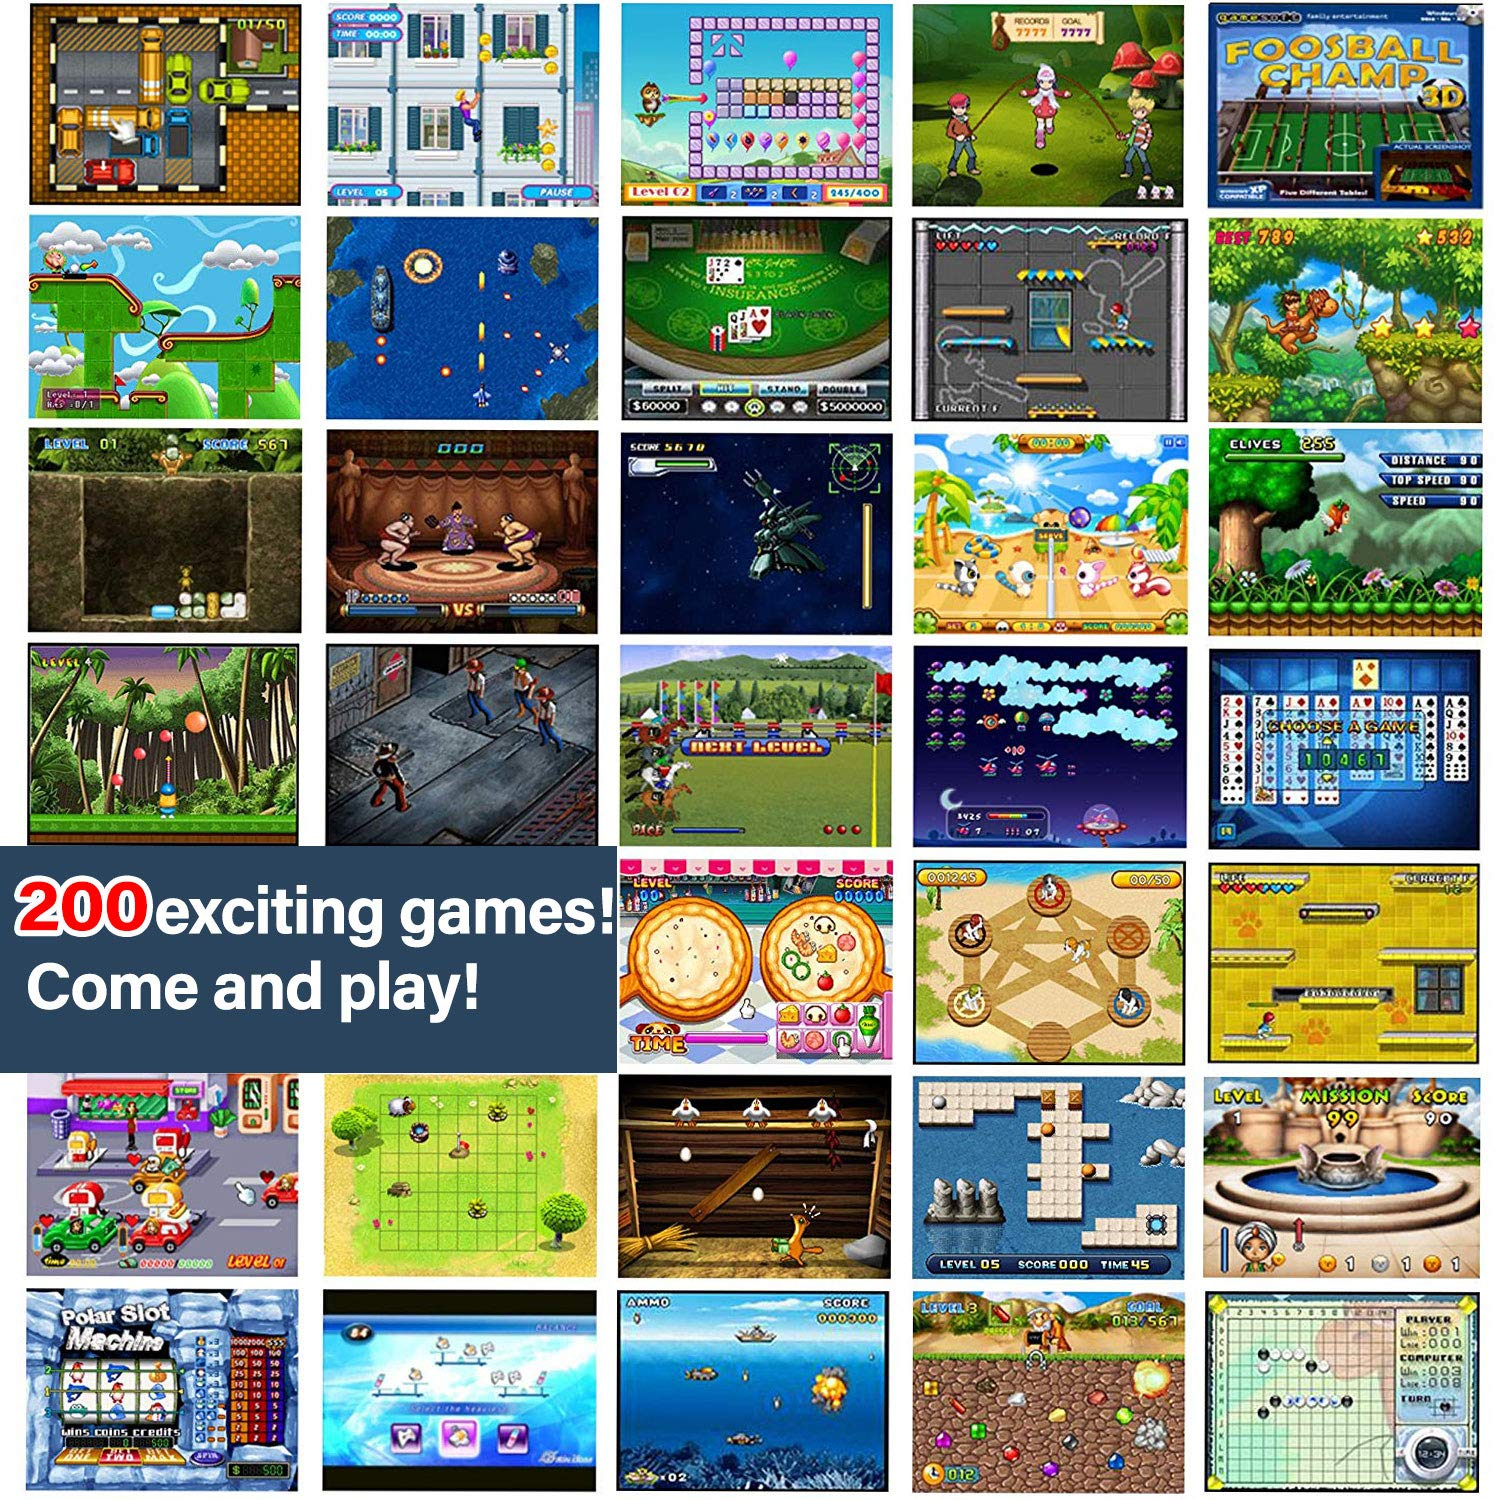 GBD Kids Mini Retro Arcade Game Cabinet Machine 200 Classic Handheld Video Games 2.5'' Display Joystick Travel Portable Game Player Kids Boys Girls Holiday Birthday Gifts Electronic Toys by GBD (Image #8)